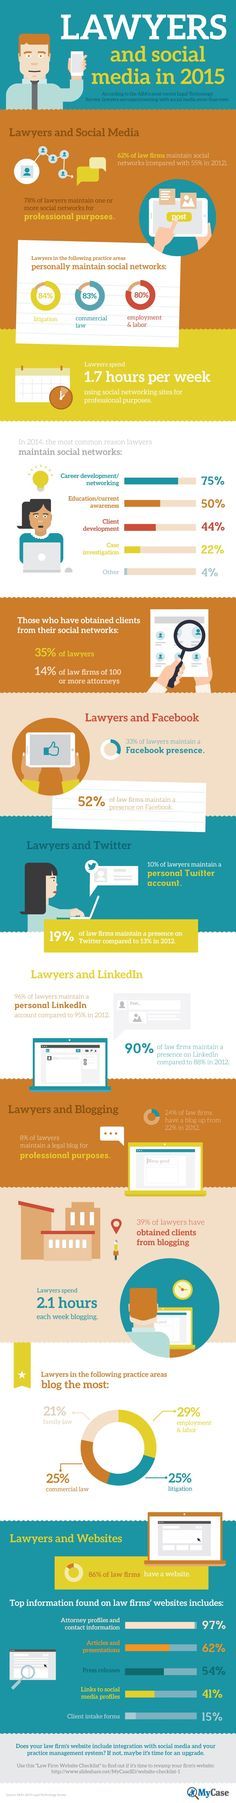 How are Lawyers Using Social Media? [INFOGRAPHIC]